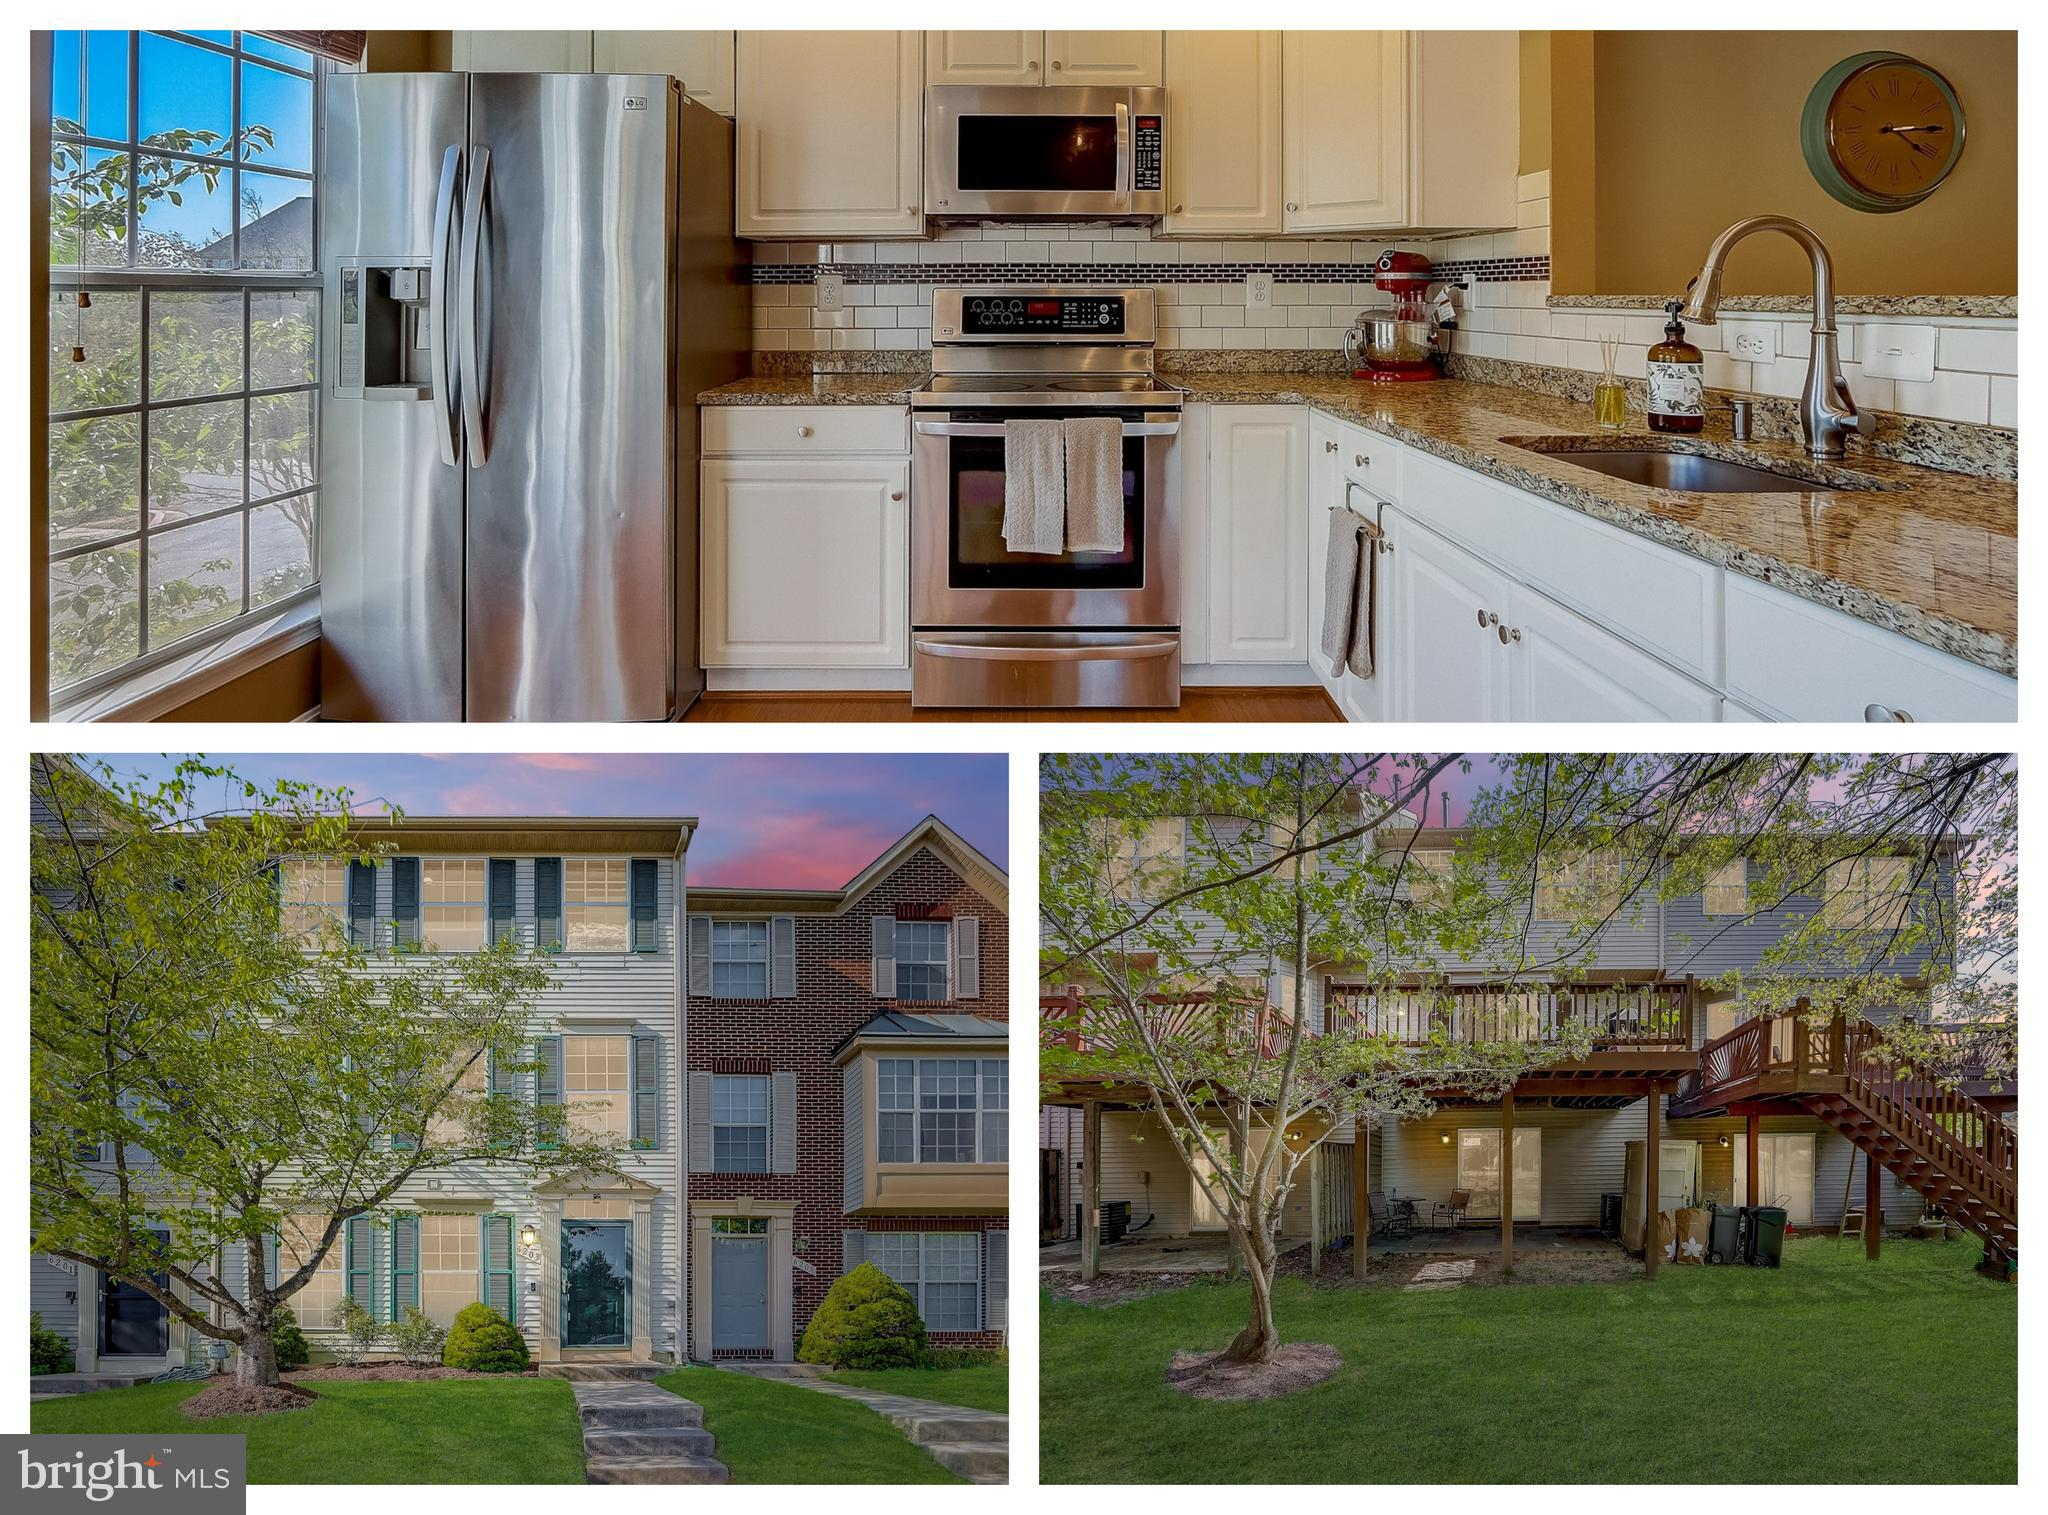 There is never a wrong time to buy the right home. Come see for yourself this beautiful 3 bedroom 3